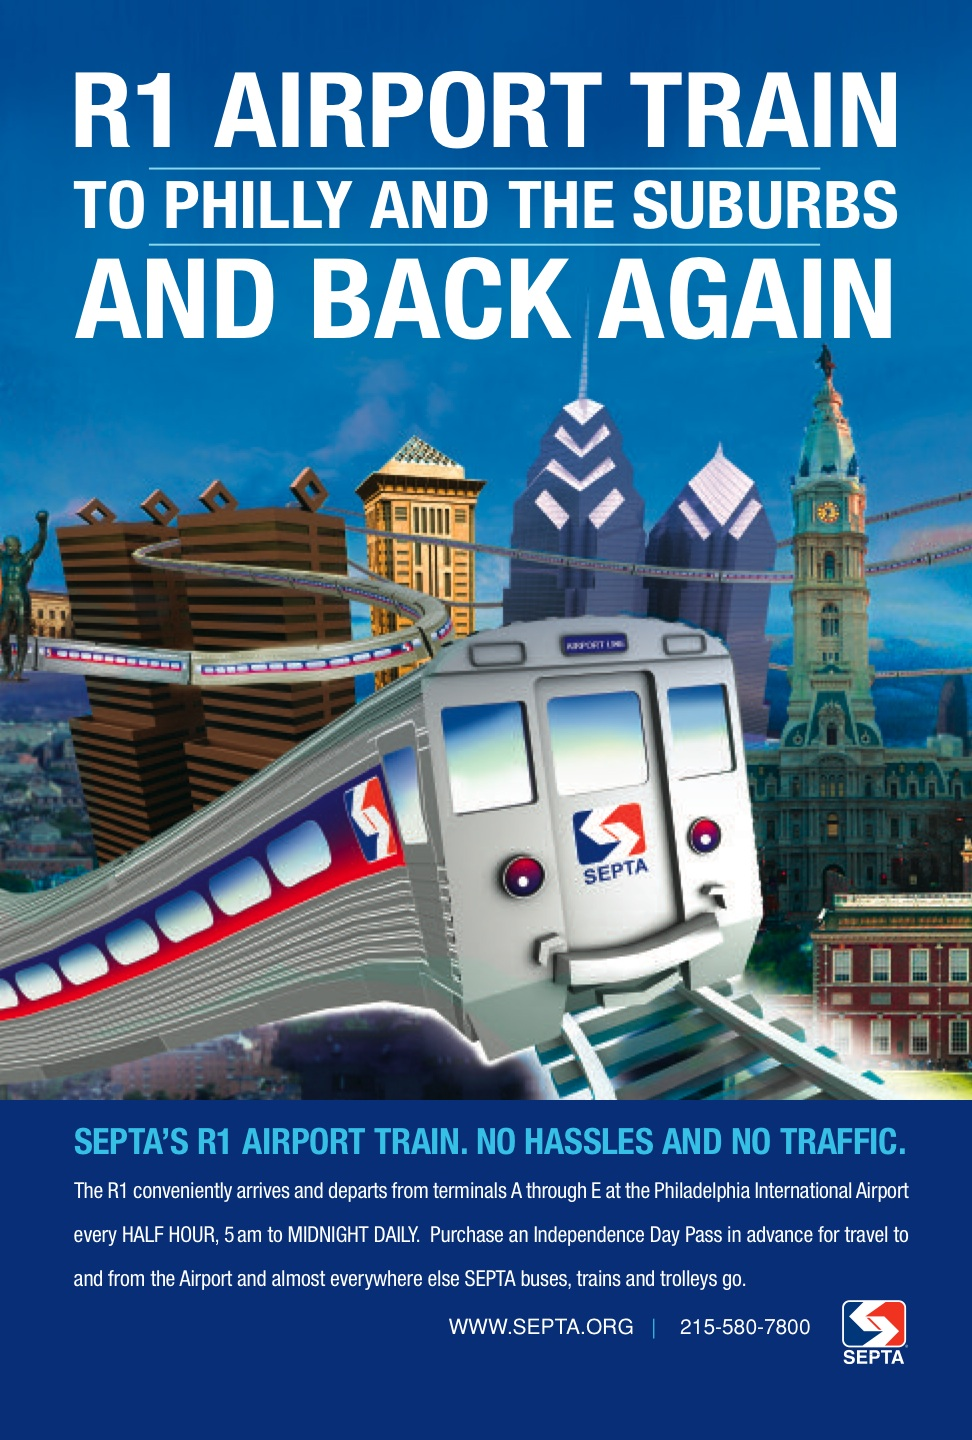 The R1 Line SEPTA advertisement promoting the service